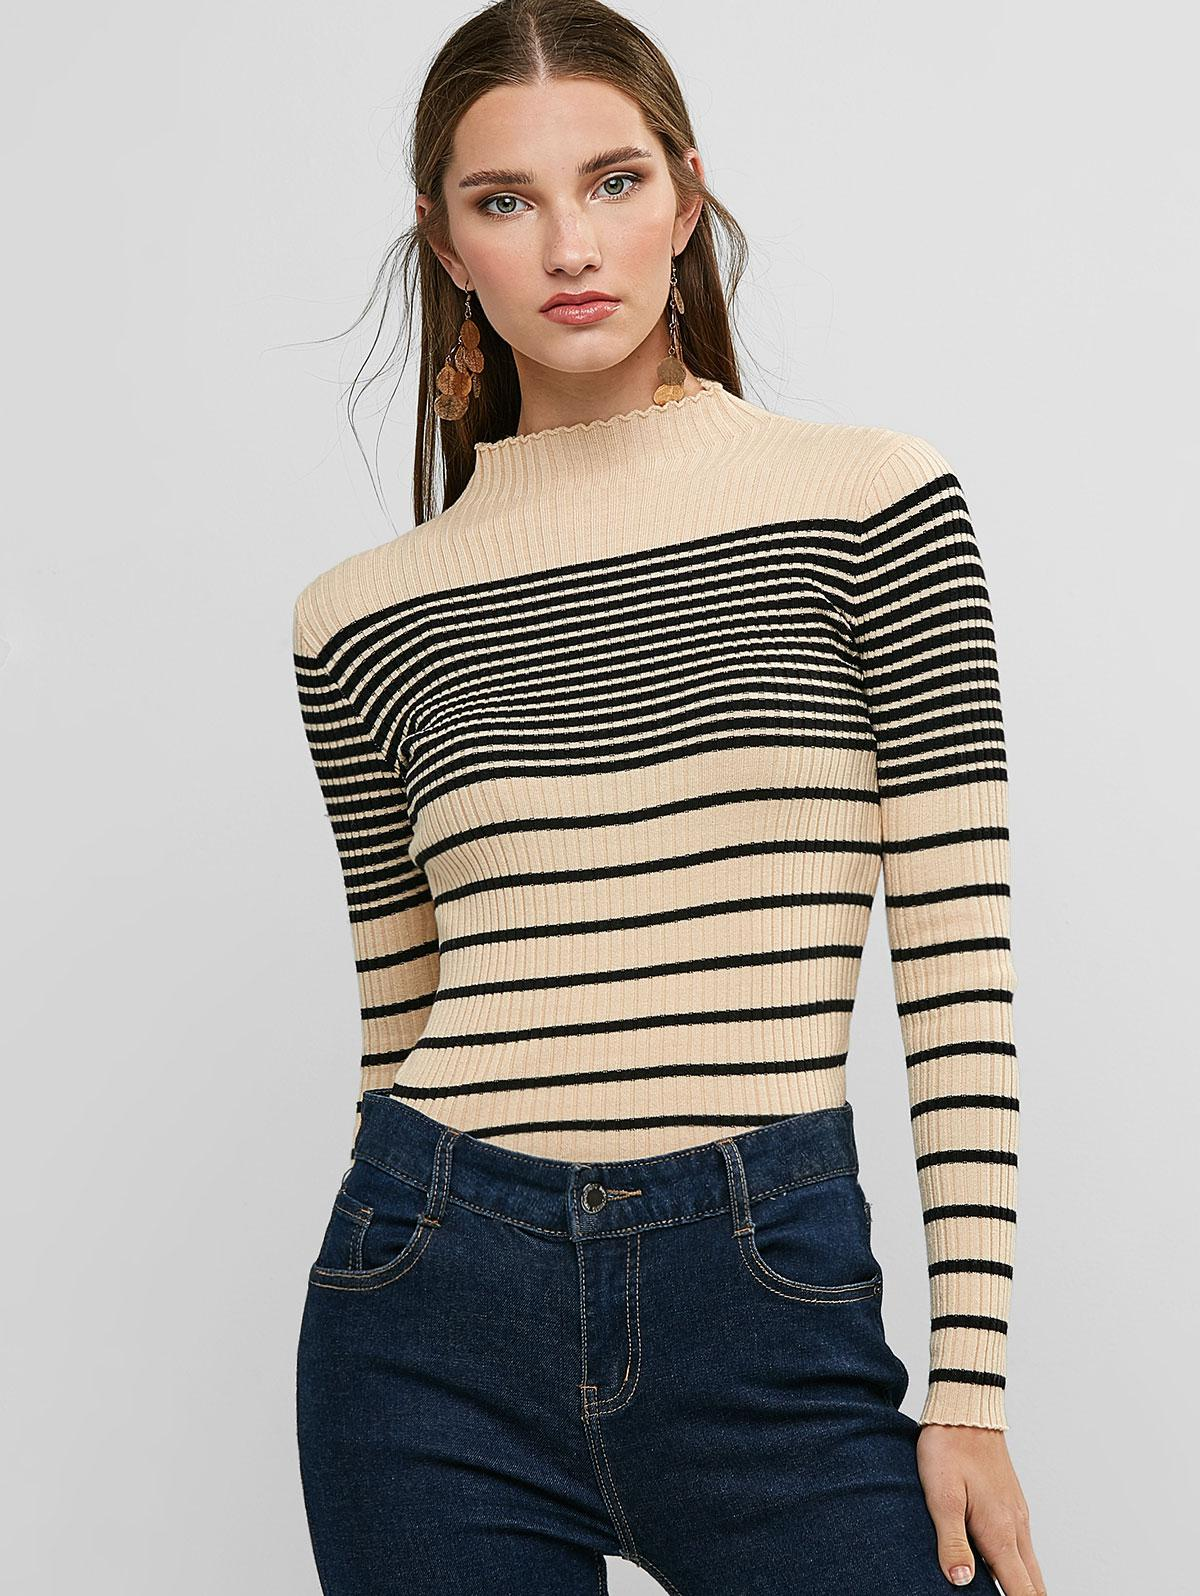 Ribbed Striped Mock Neck Fitted Sweater